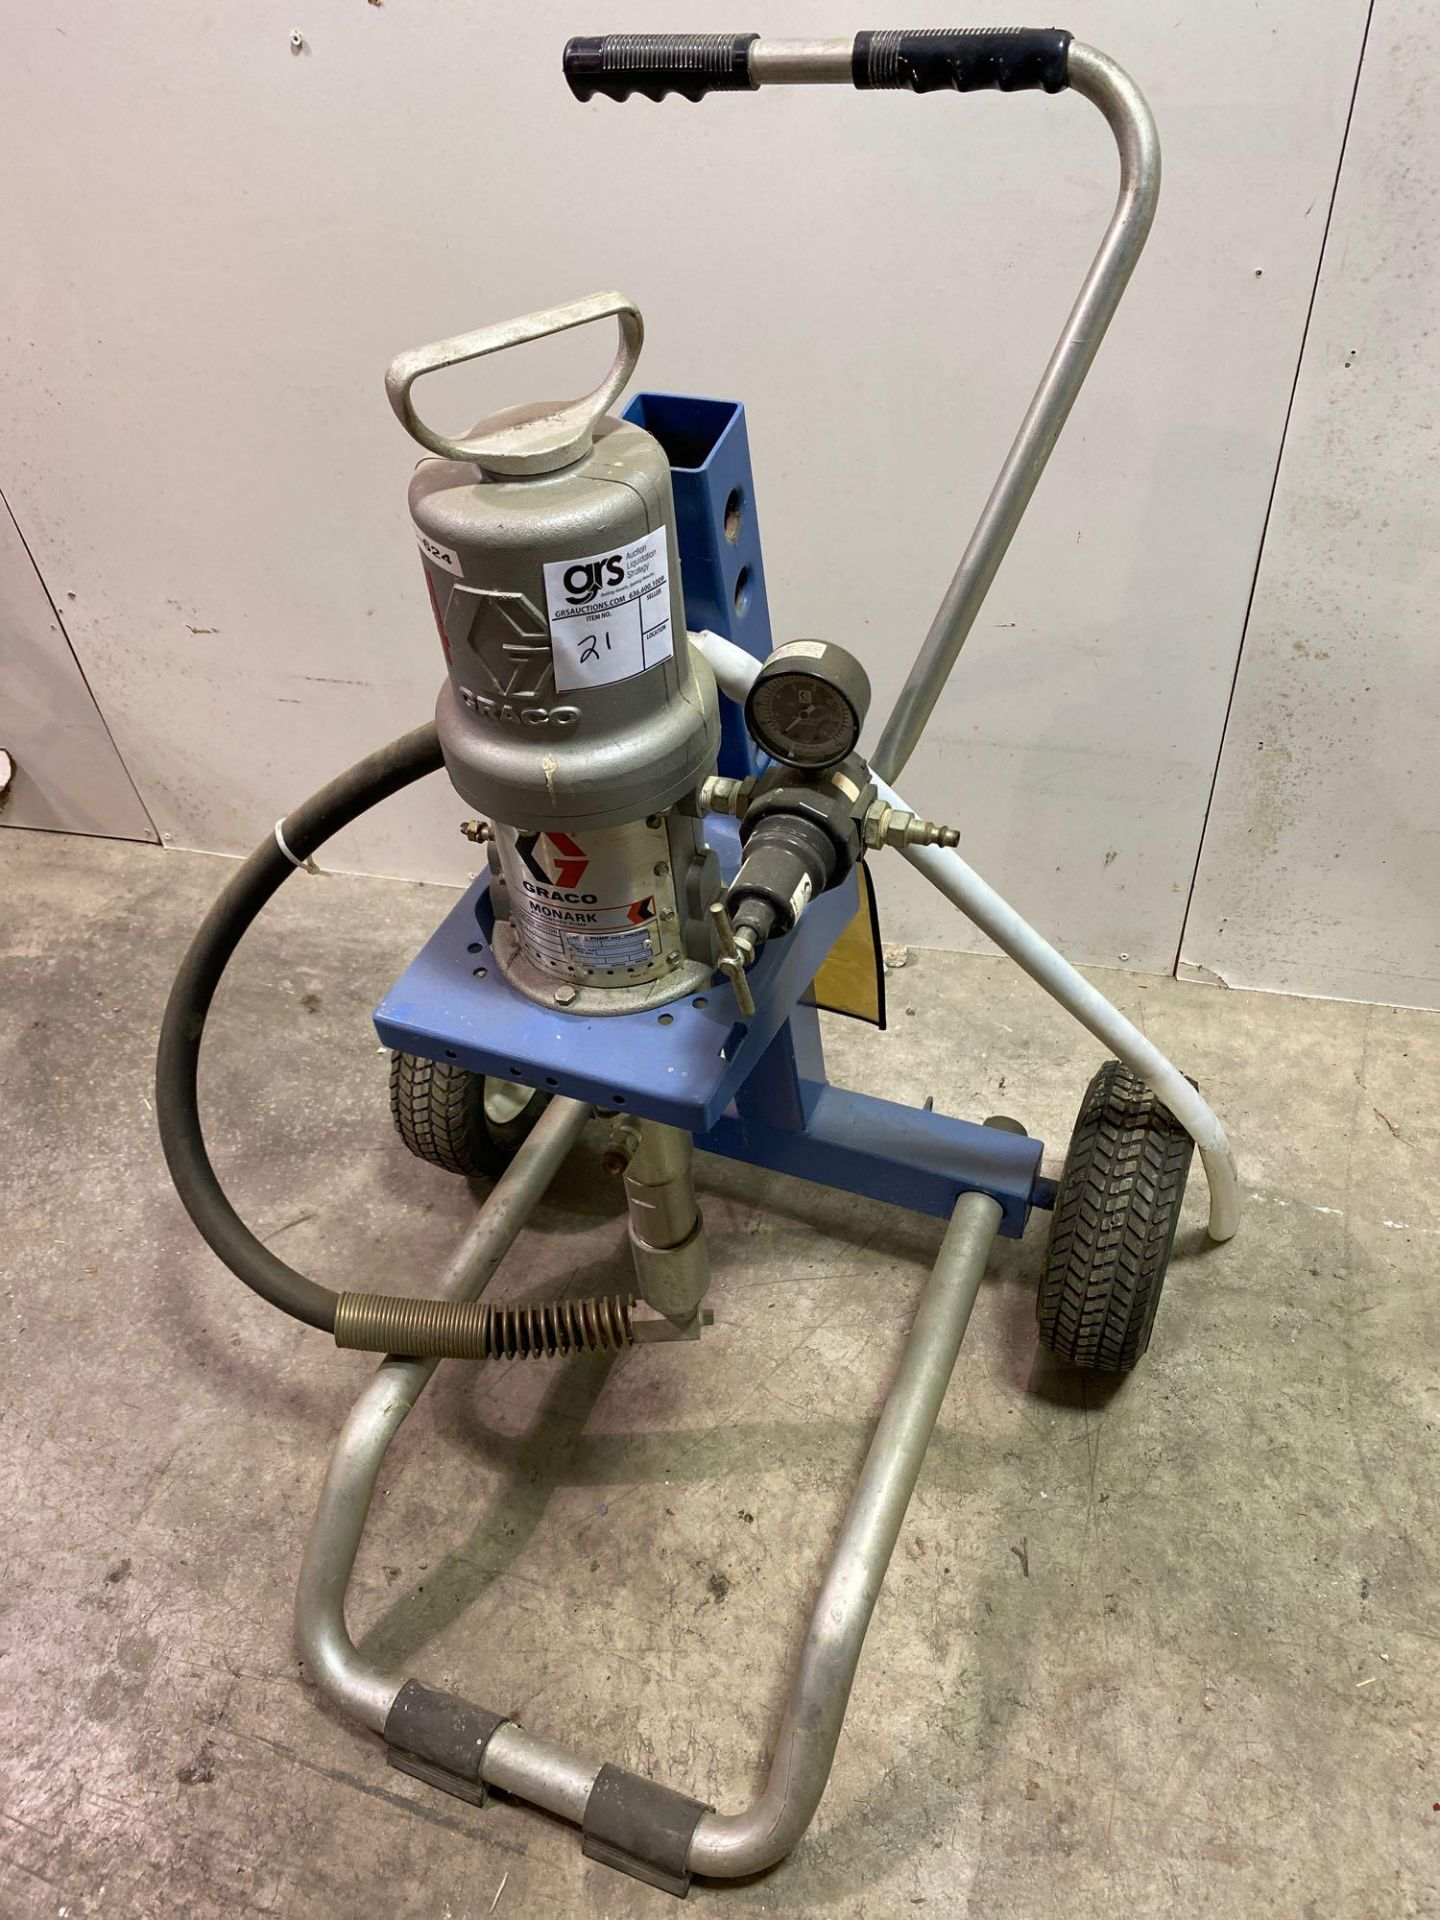 Graco Monark Air Powered Pump Sprayer on Cart - Image 4 of 5